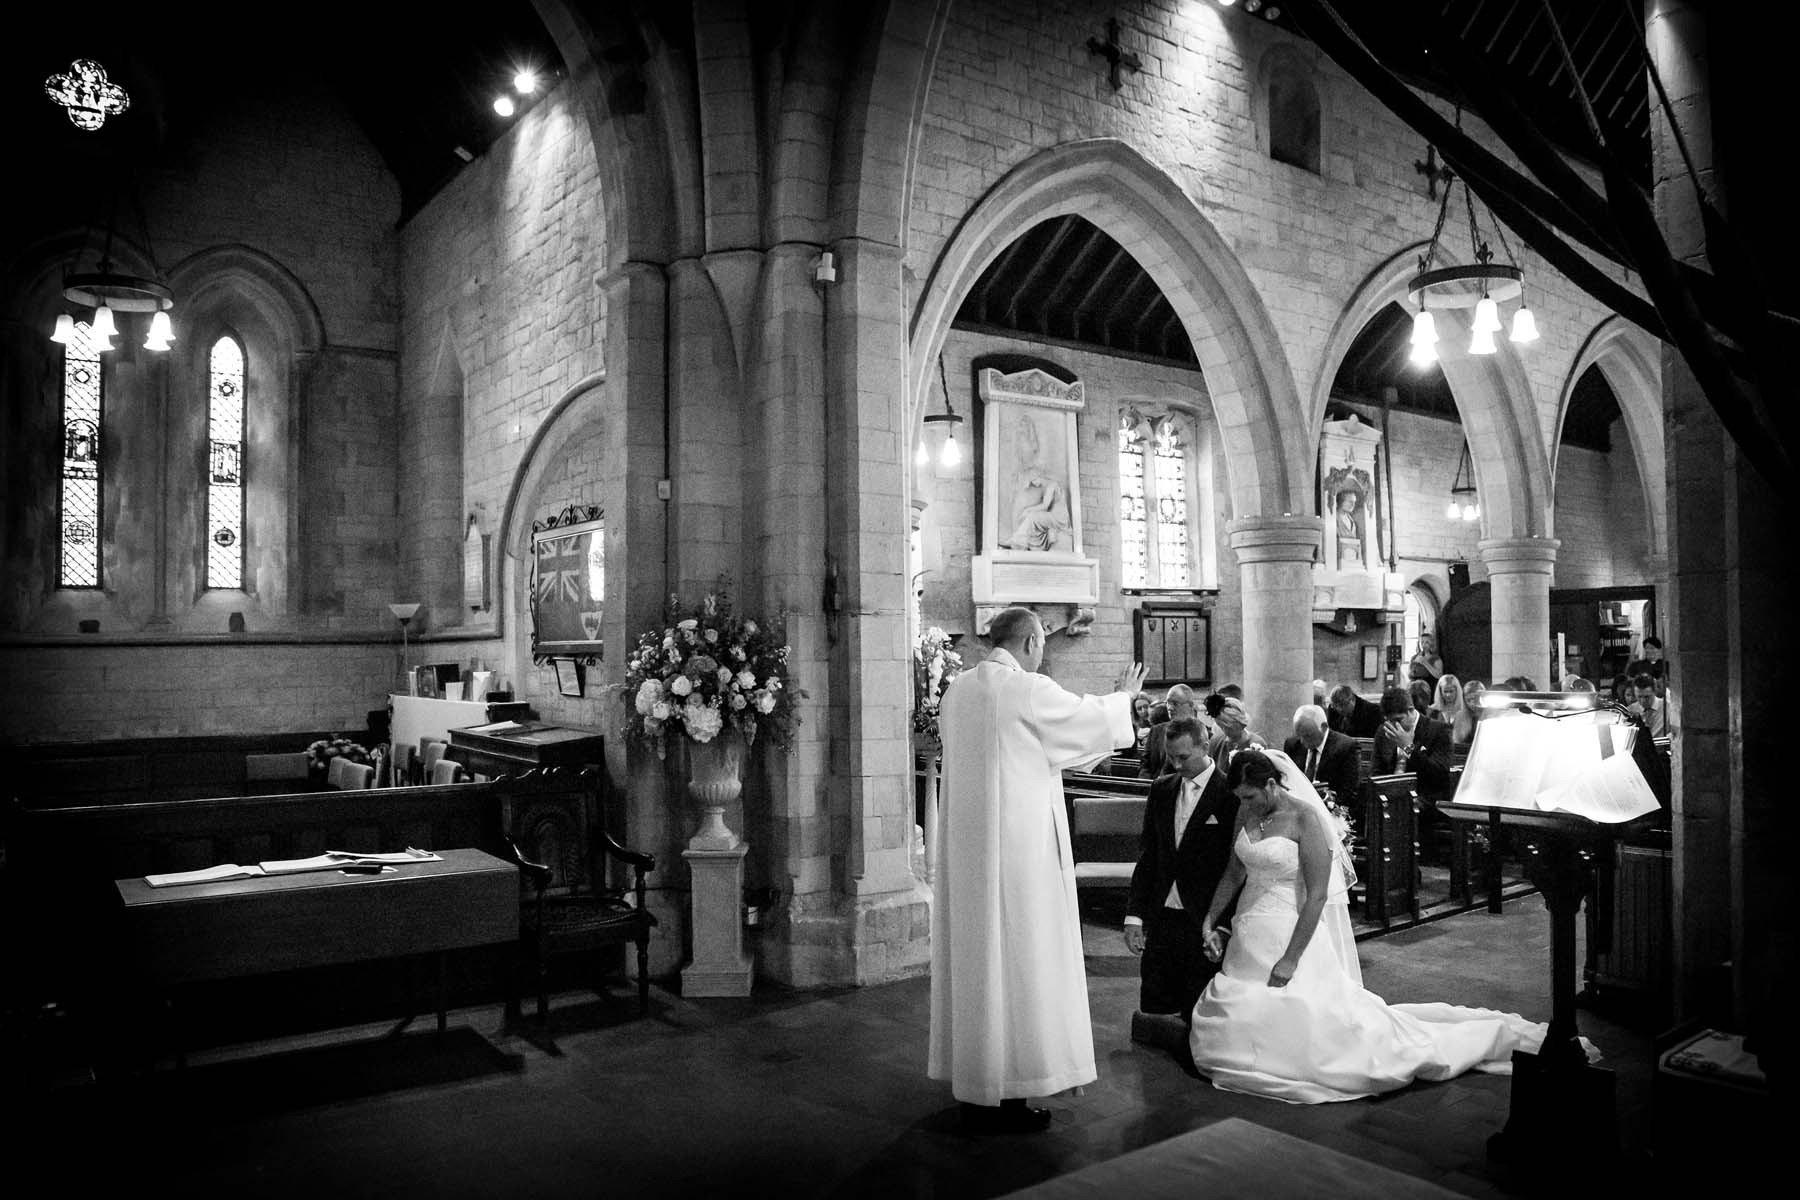 Sussex & Surrey Wedding Photographer - Ceremony (18)